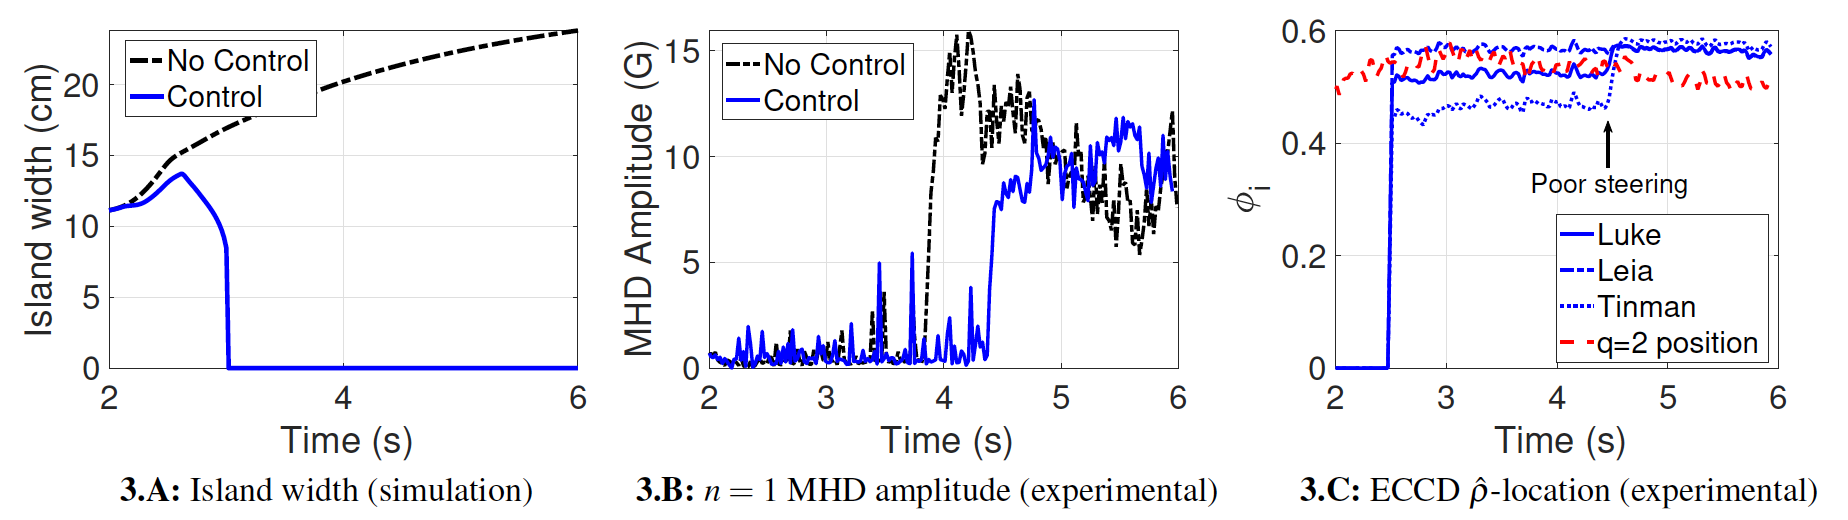 NTM suppression in a DIII-D steady-state, high-$q_{min}$ scenario. COTSIM simulations predict a total shrinkage of the magnetic island (Fig. 3.A) which is not observed during experiments (Fig. 3.B), partly due to poor mirror steering (Fig. 3.C).